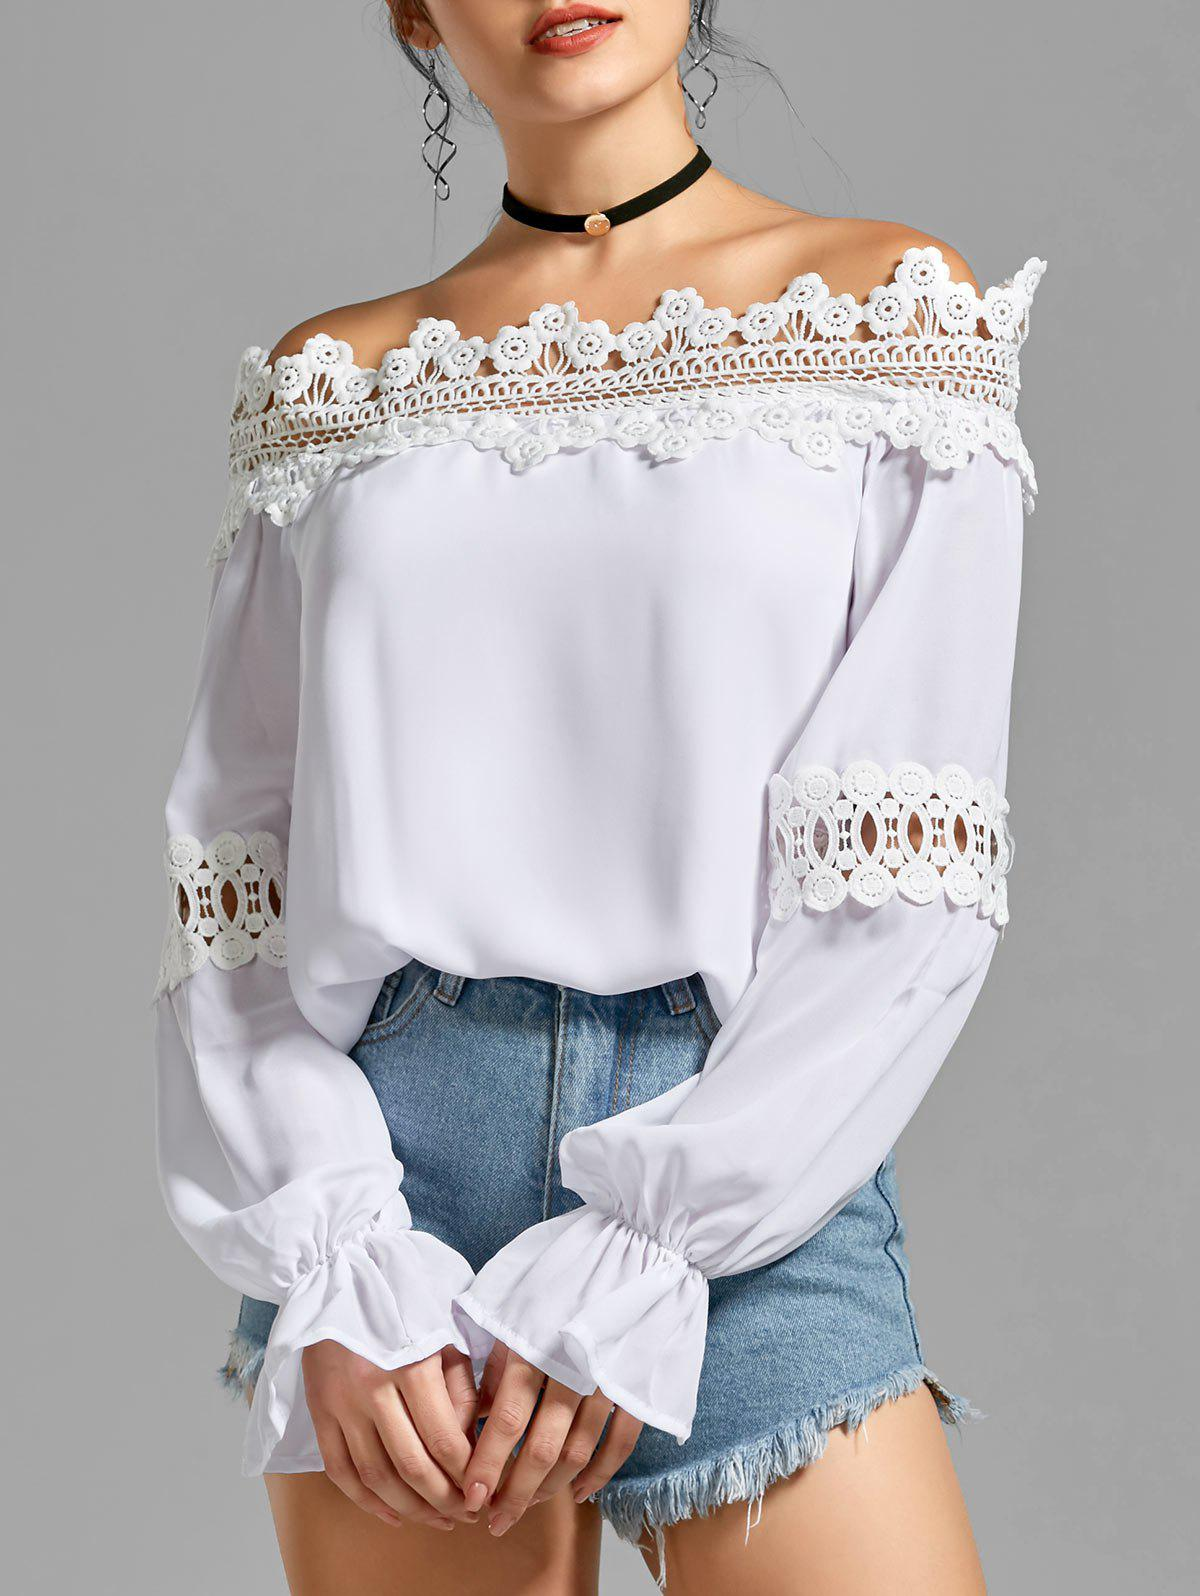 Bell Sleeve Off the Shoulder Lace Panel BlouseWOMEN<br><br>Size: M; Color: WHITE; Style: Fashion; Material: Polyester; Shirt Length: Regular; Sleeve Length: Full; Collar: Off The Shoulder; Pattern Type: Solid; Season: Fall,Spring,Summer; Weight: 0.3500kg; Package Contents: 1 x Blouse;